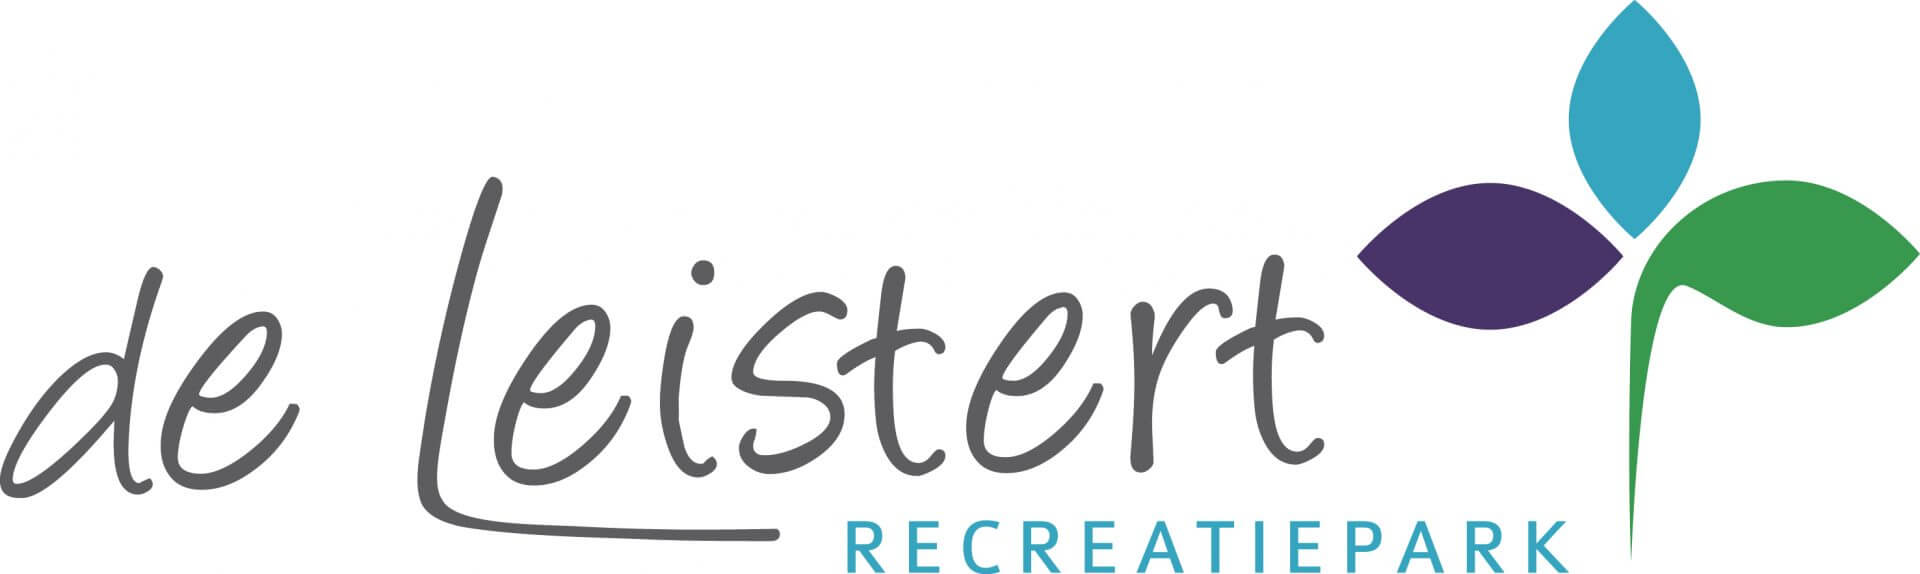 Logo de Leistert recreatiepark CMYK